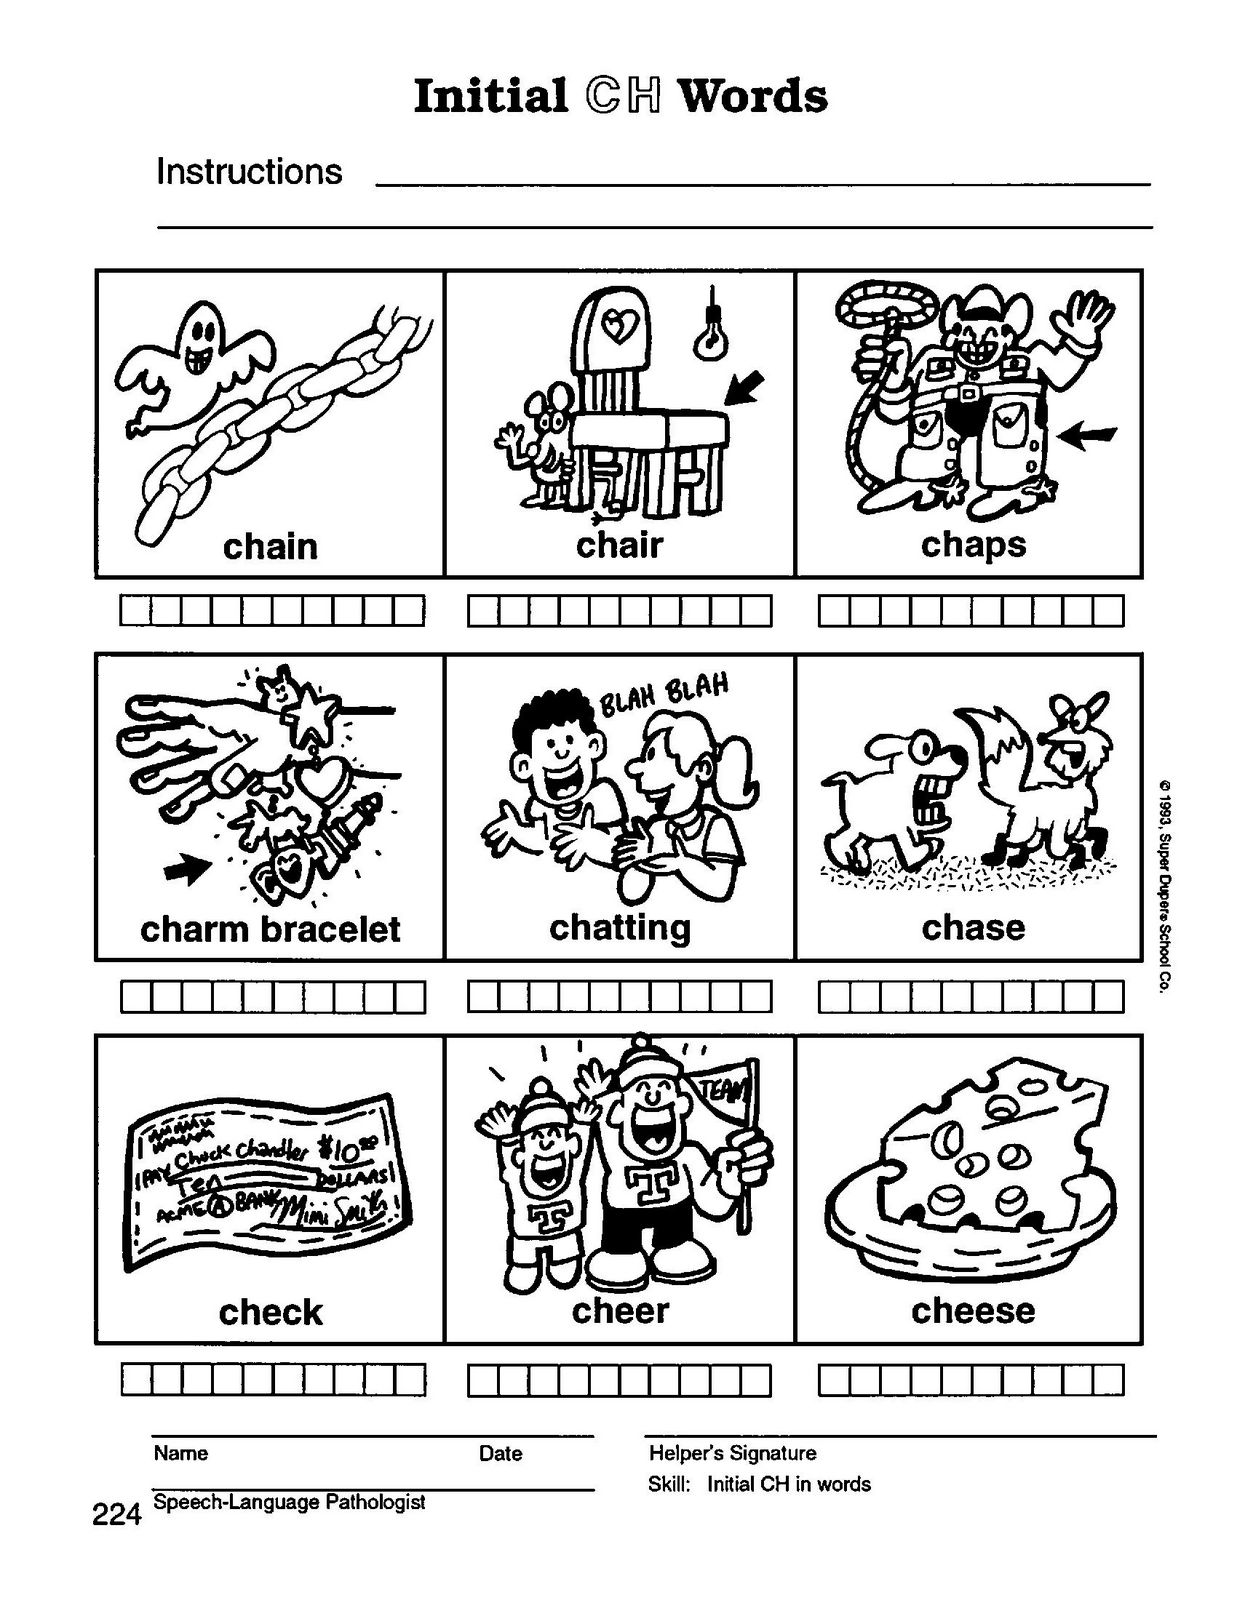 Speech Therapy With Miss Nicole Ch Initial Words